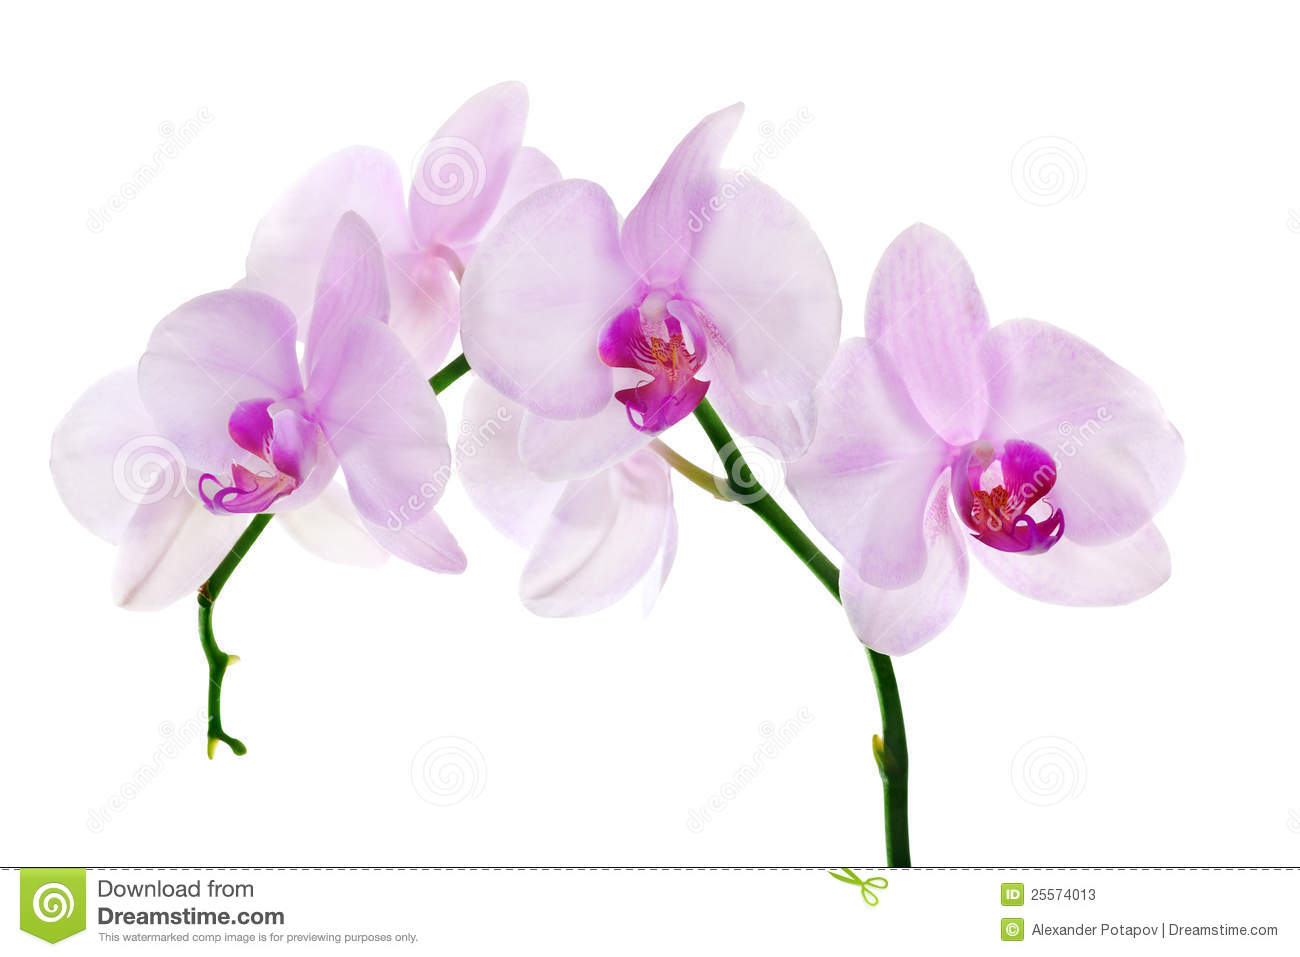 Light pink orchid flowers isolated on white background.